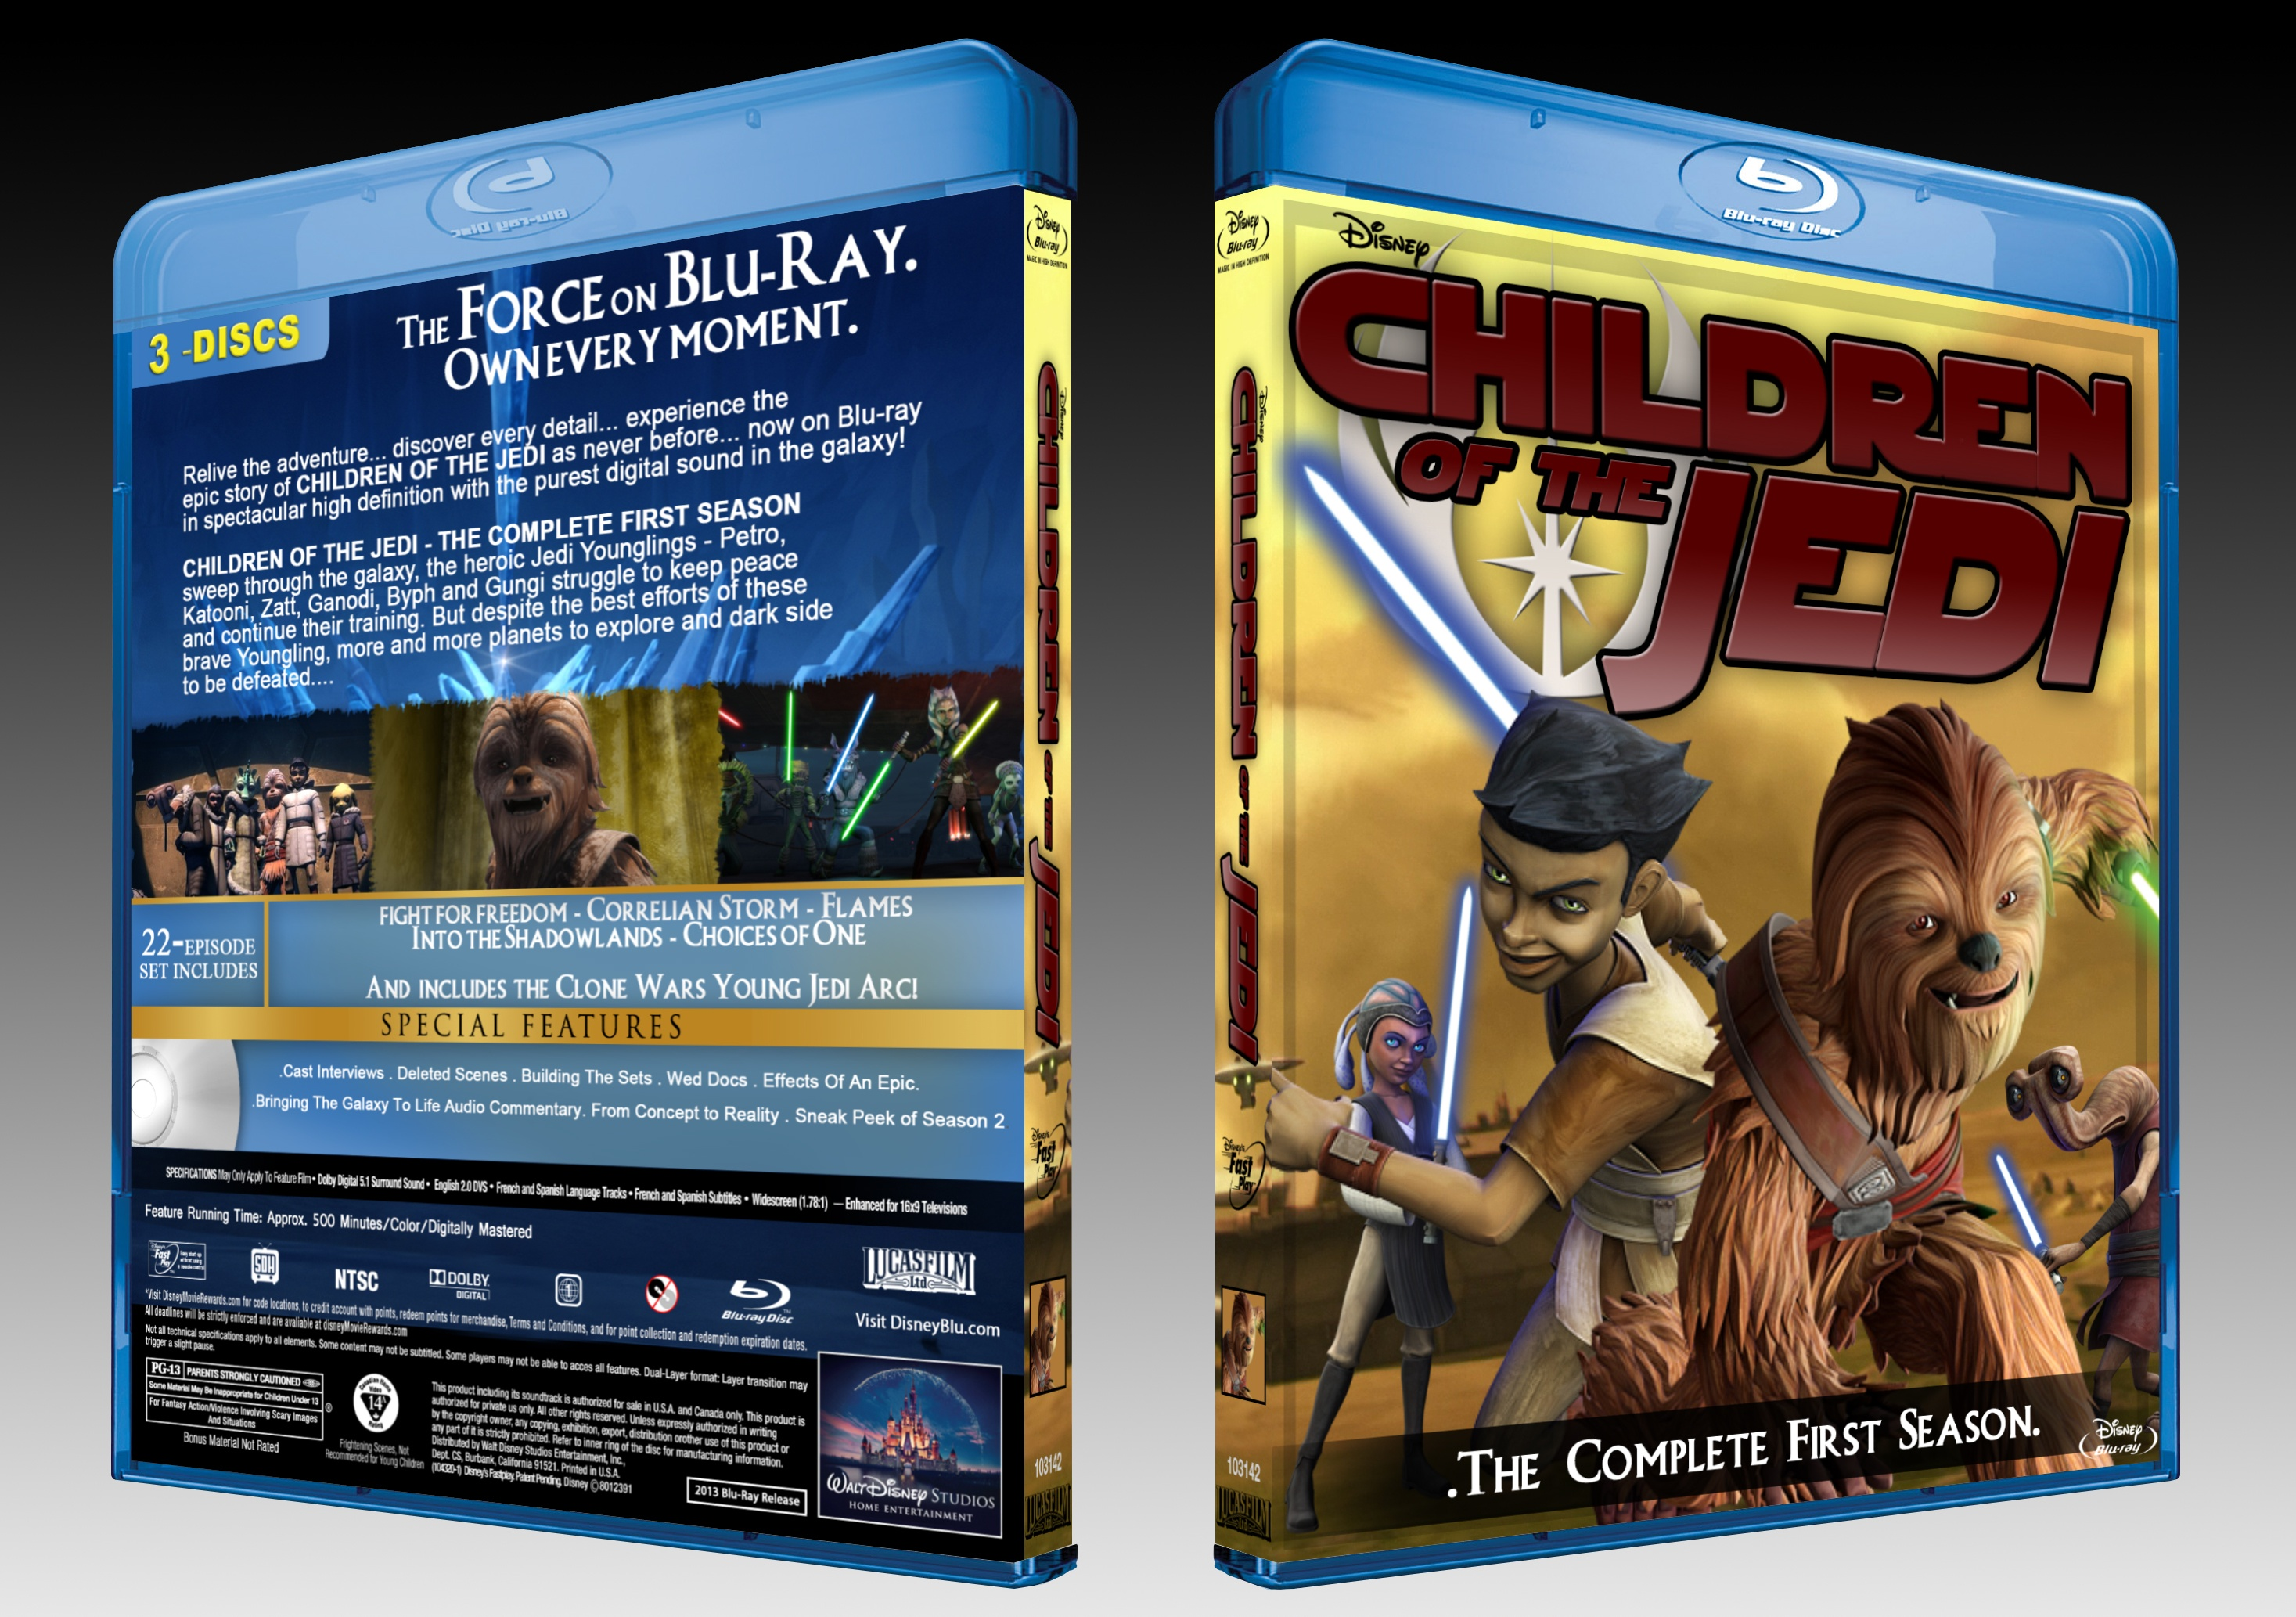 Viewing Full Size Star Wars Children Of The Jedi Box Cover The jedi (/ˈdʒɛdaɪ/) are the main protagonists of many works of the star wars franchise, often working symbiotically alongside the galactic republic and the rebel alliance. vgboxart